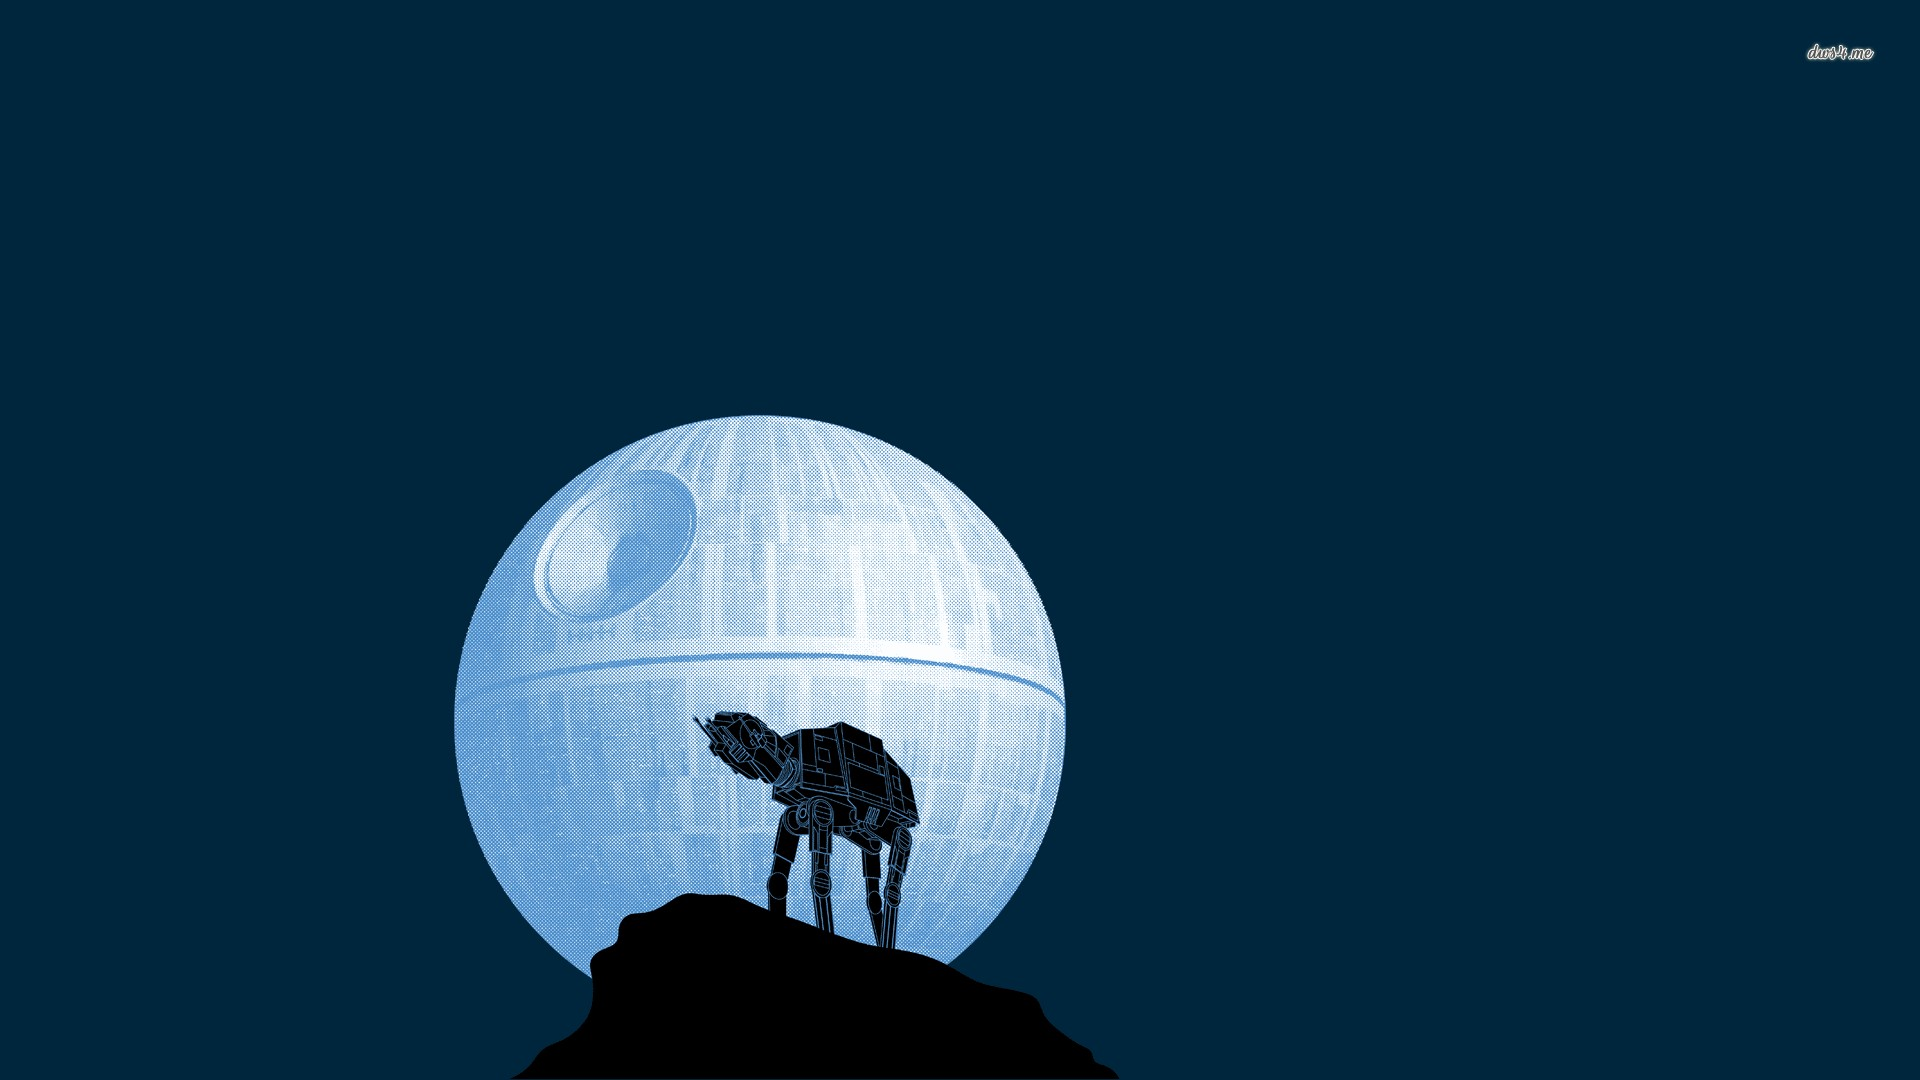 Death Star Wallpaper ·① Download Free Stunning Wallpapers